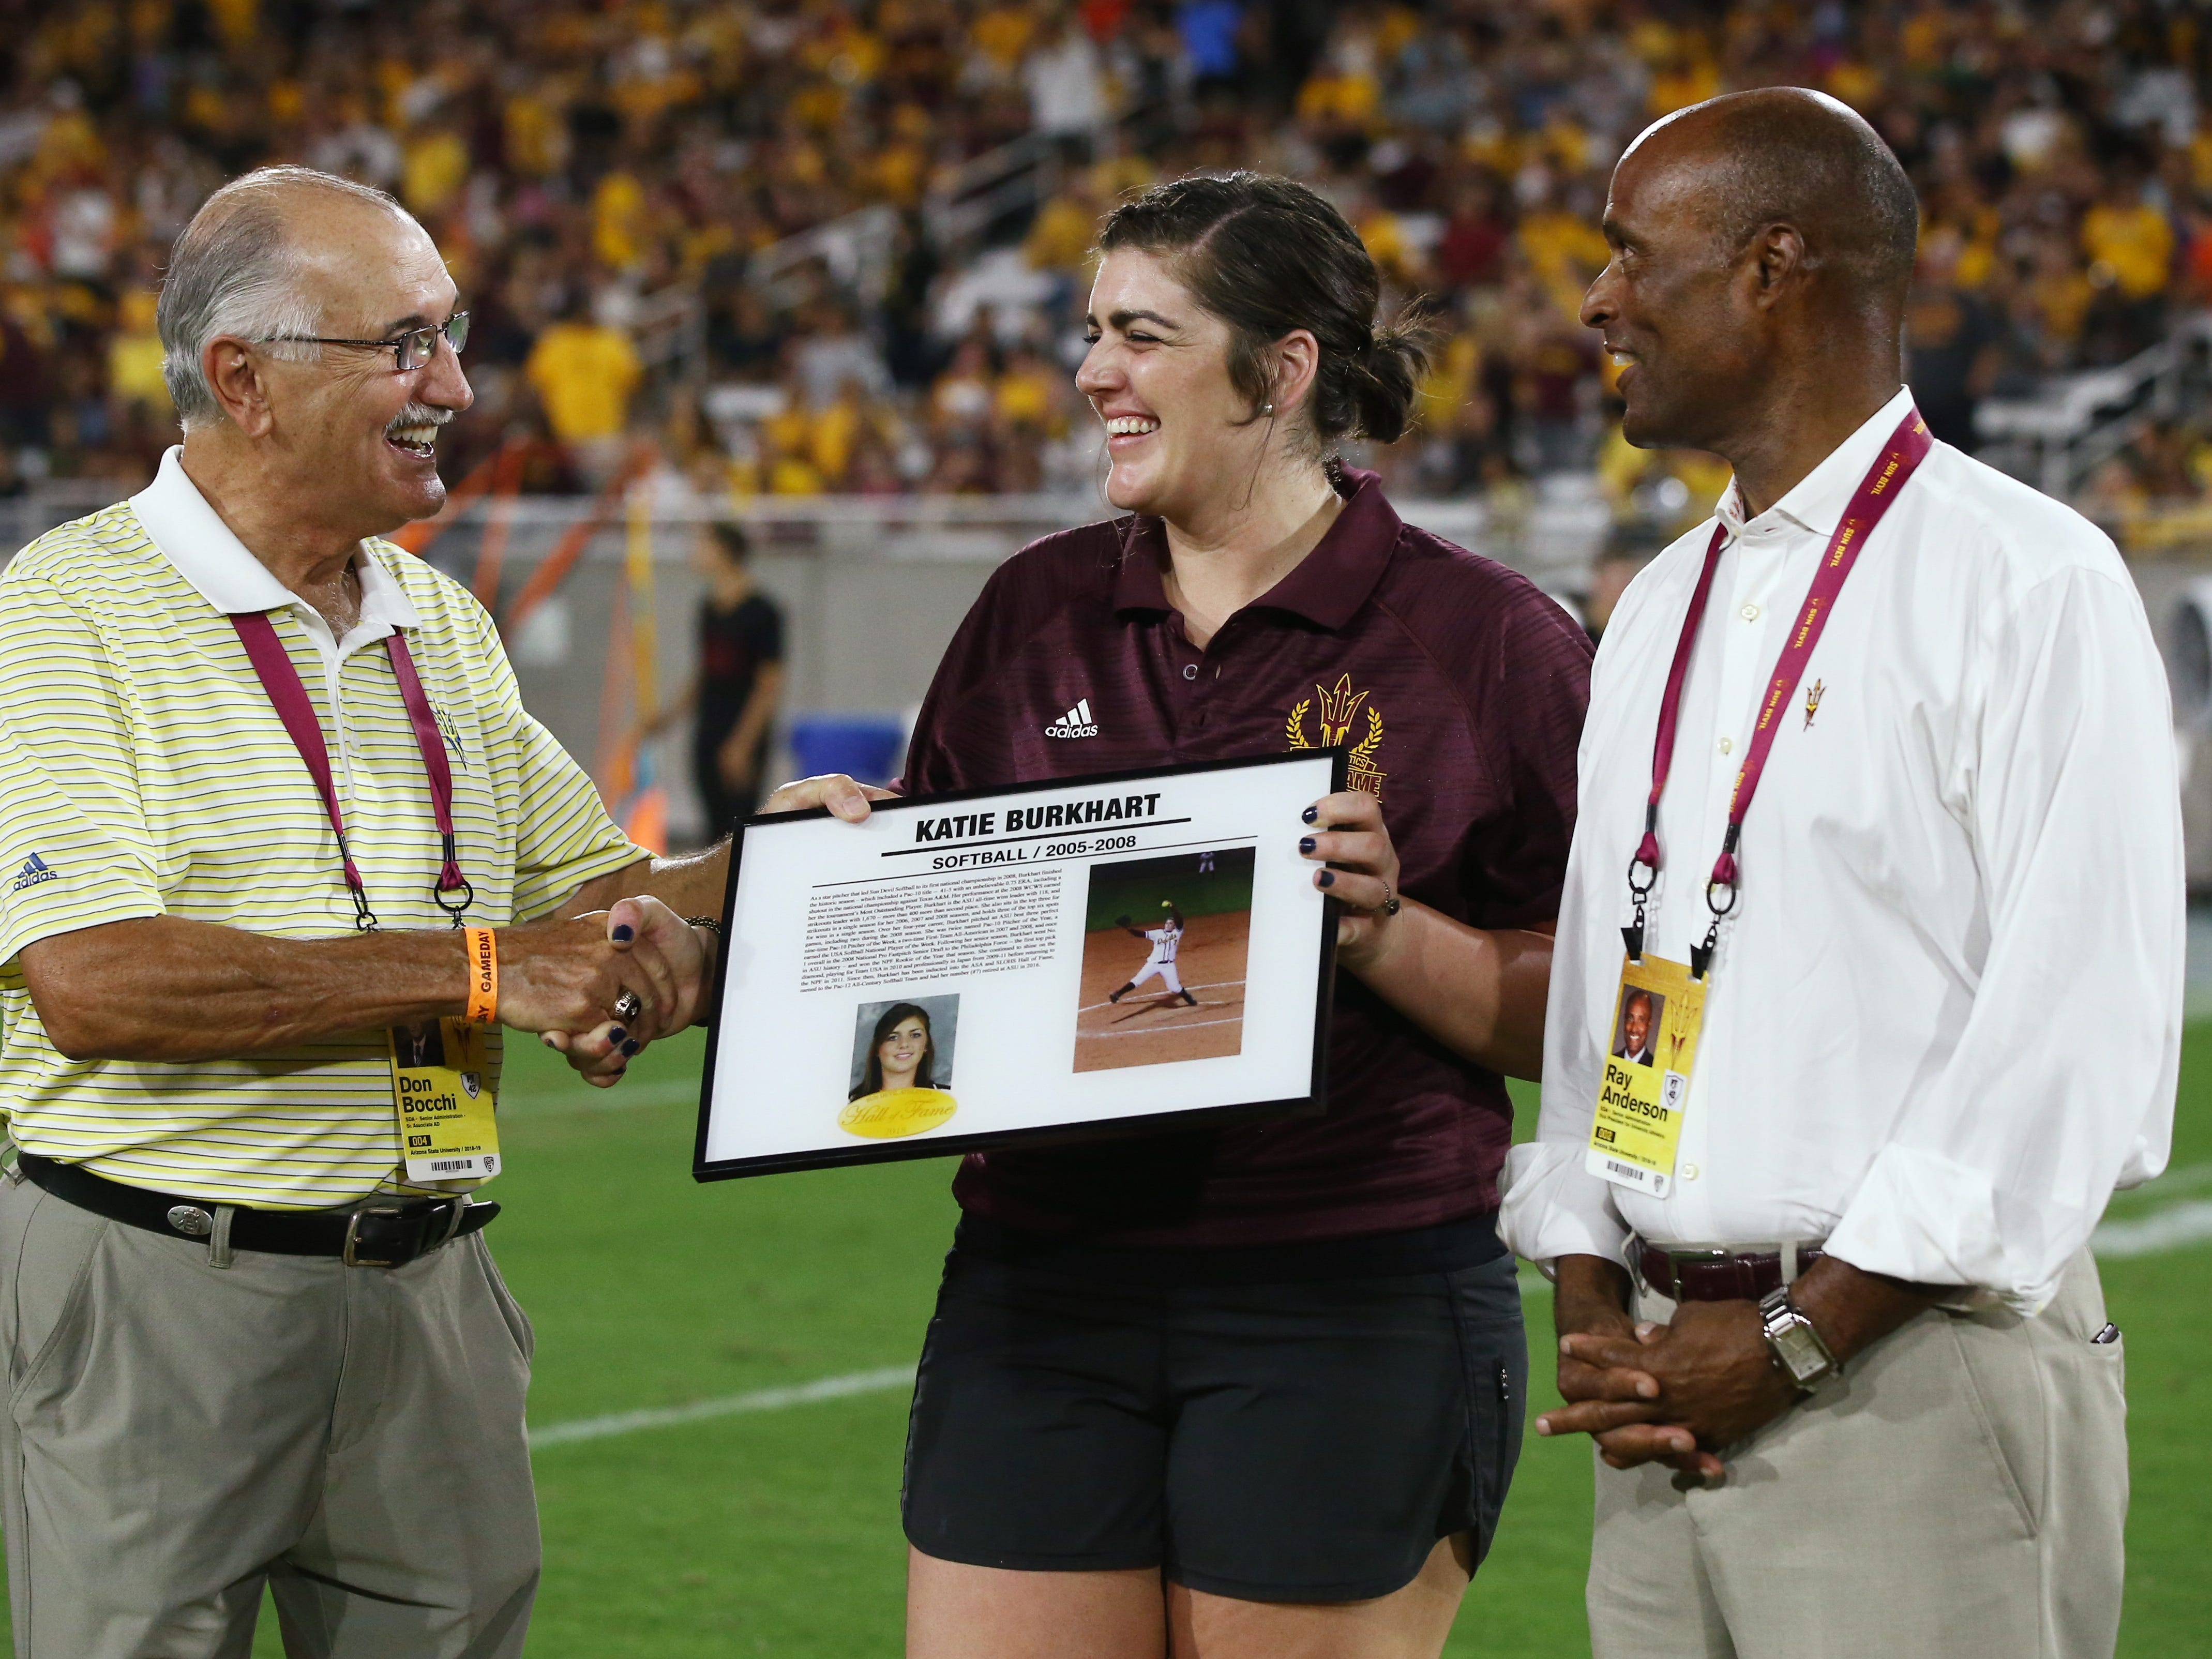 Arizona State softball player Katie Burkhart is welcomed into the ASU Athletics Hall of Frame on Sep. 29, 2018, at Sun Devil Stadium.